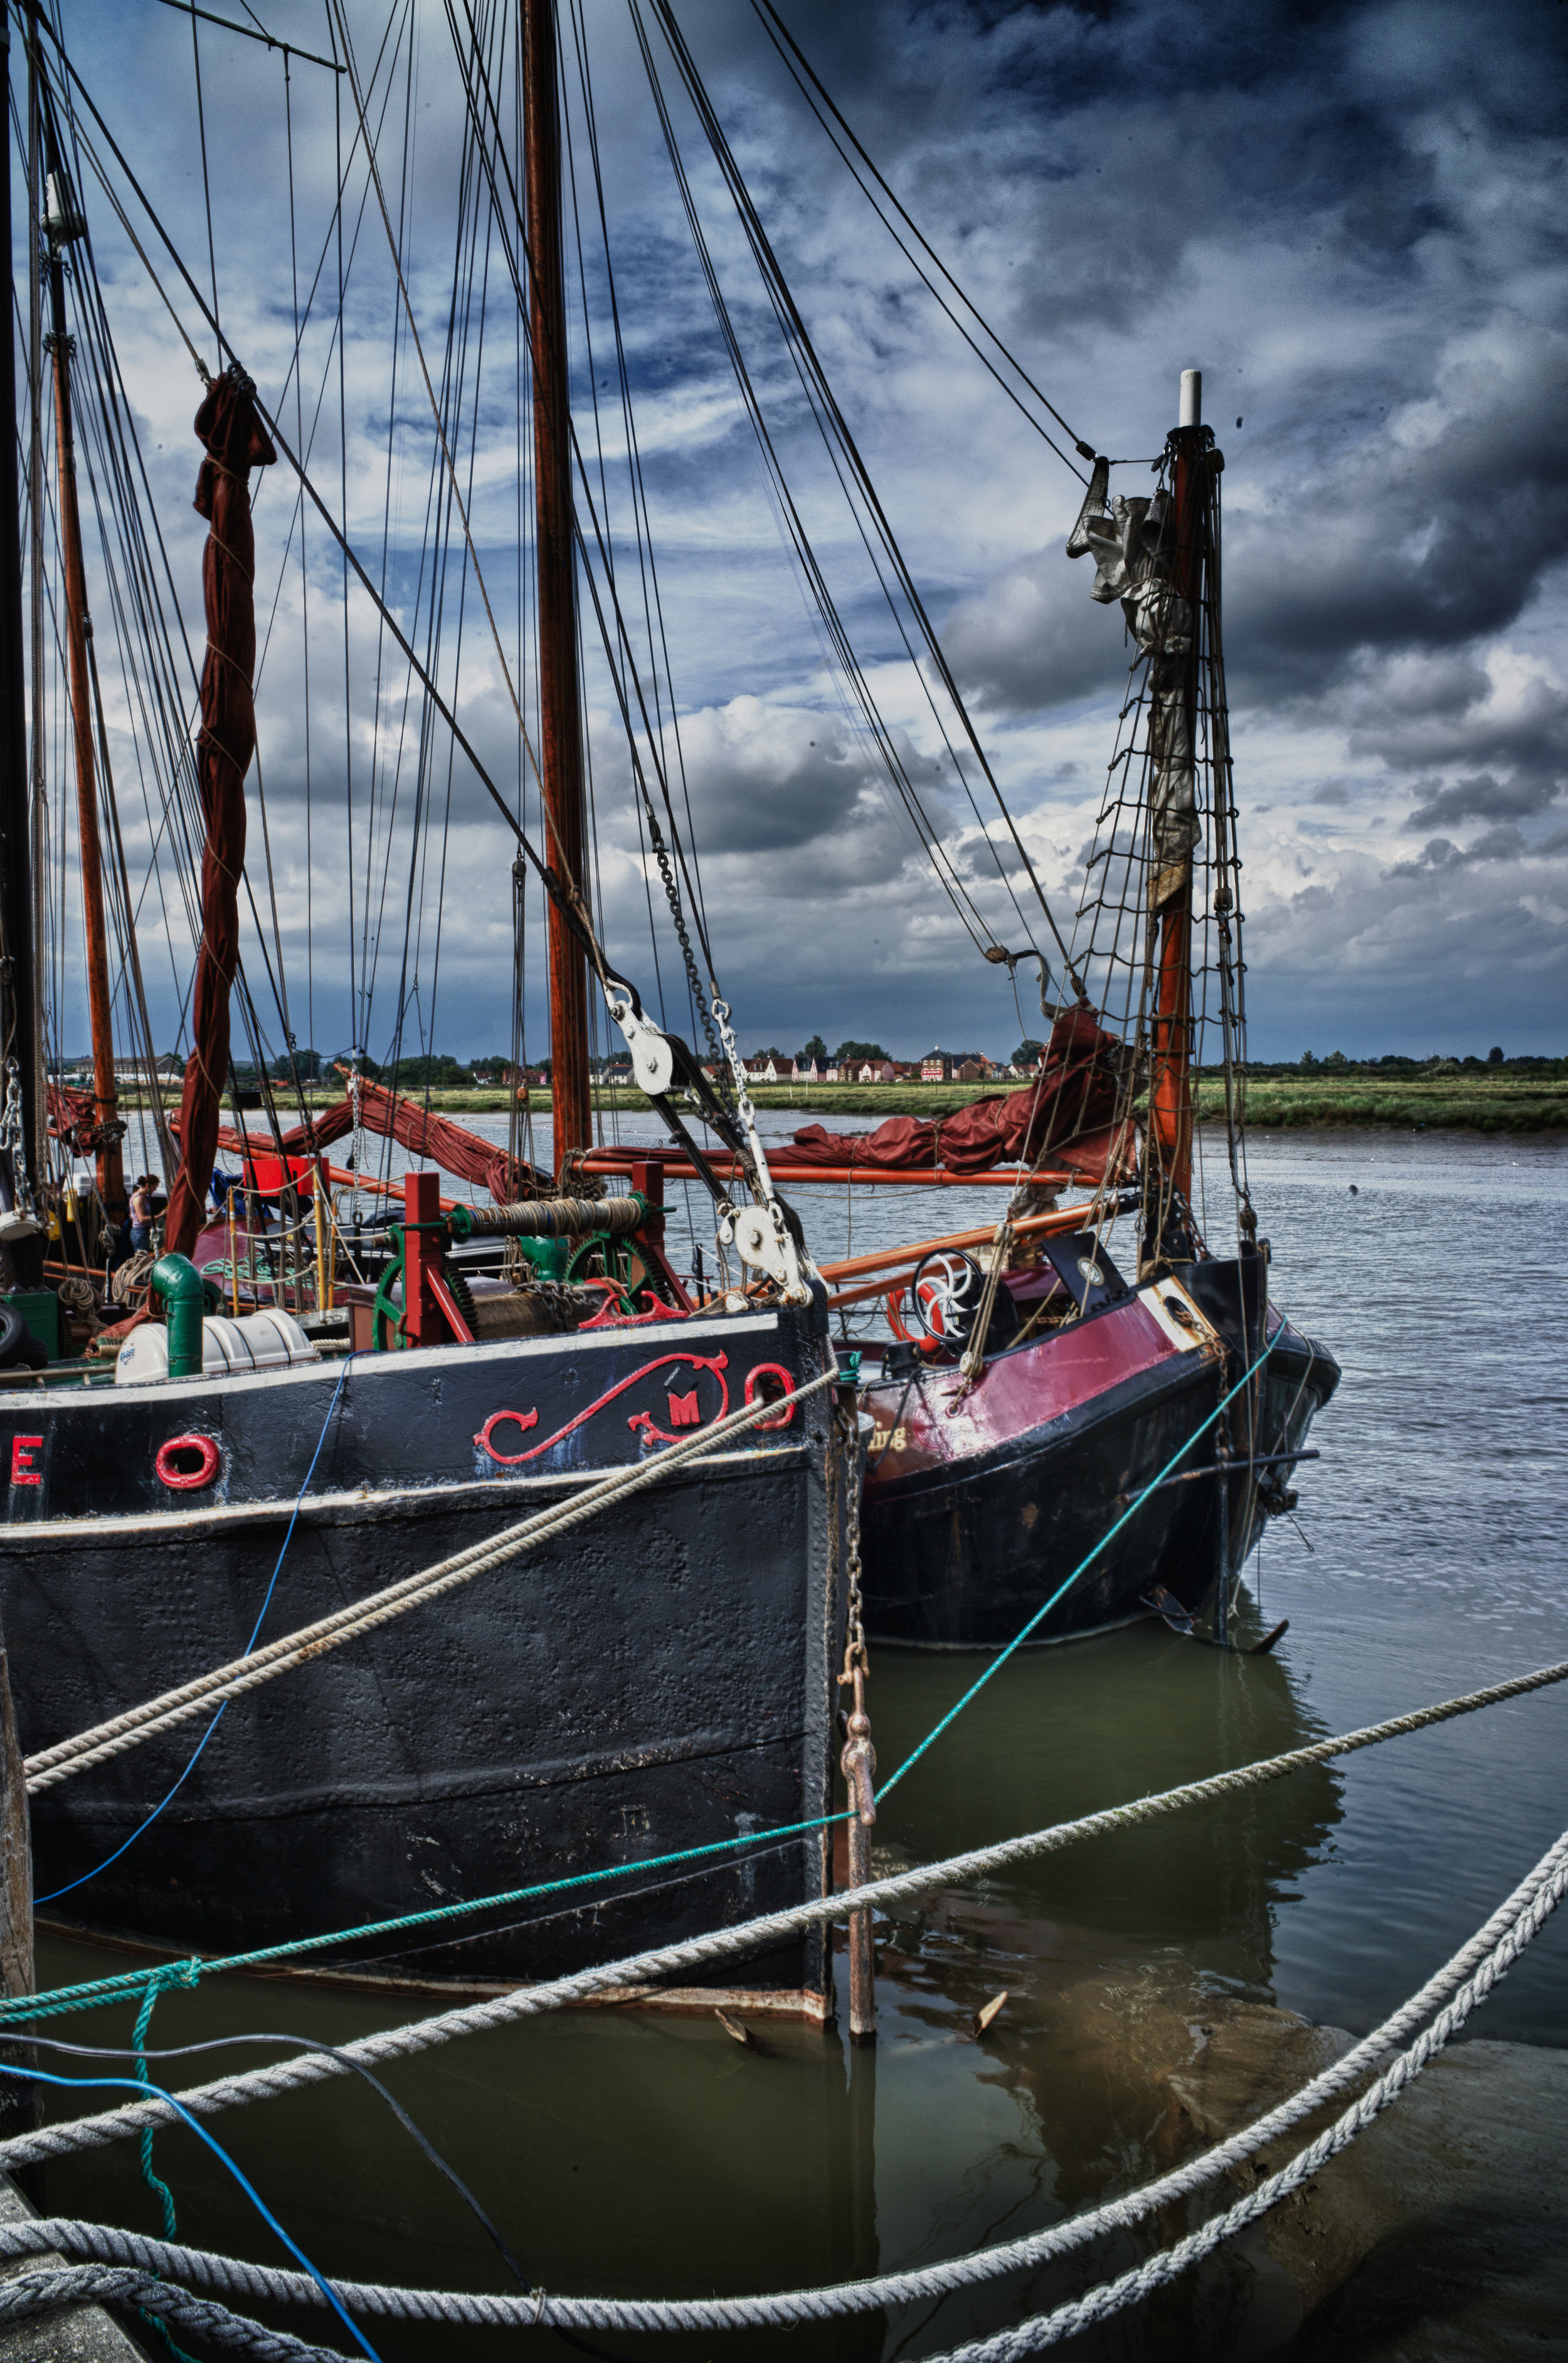 Clippers moored at Mersea Island